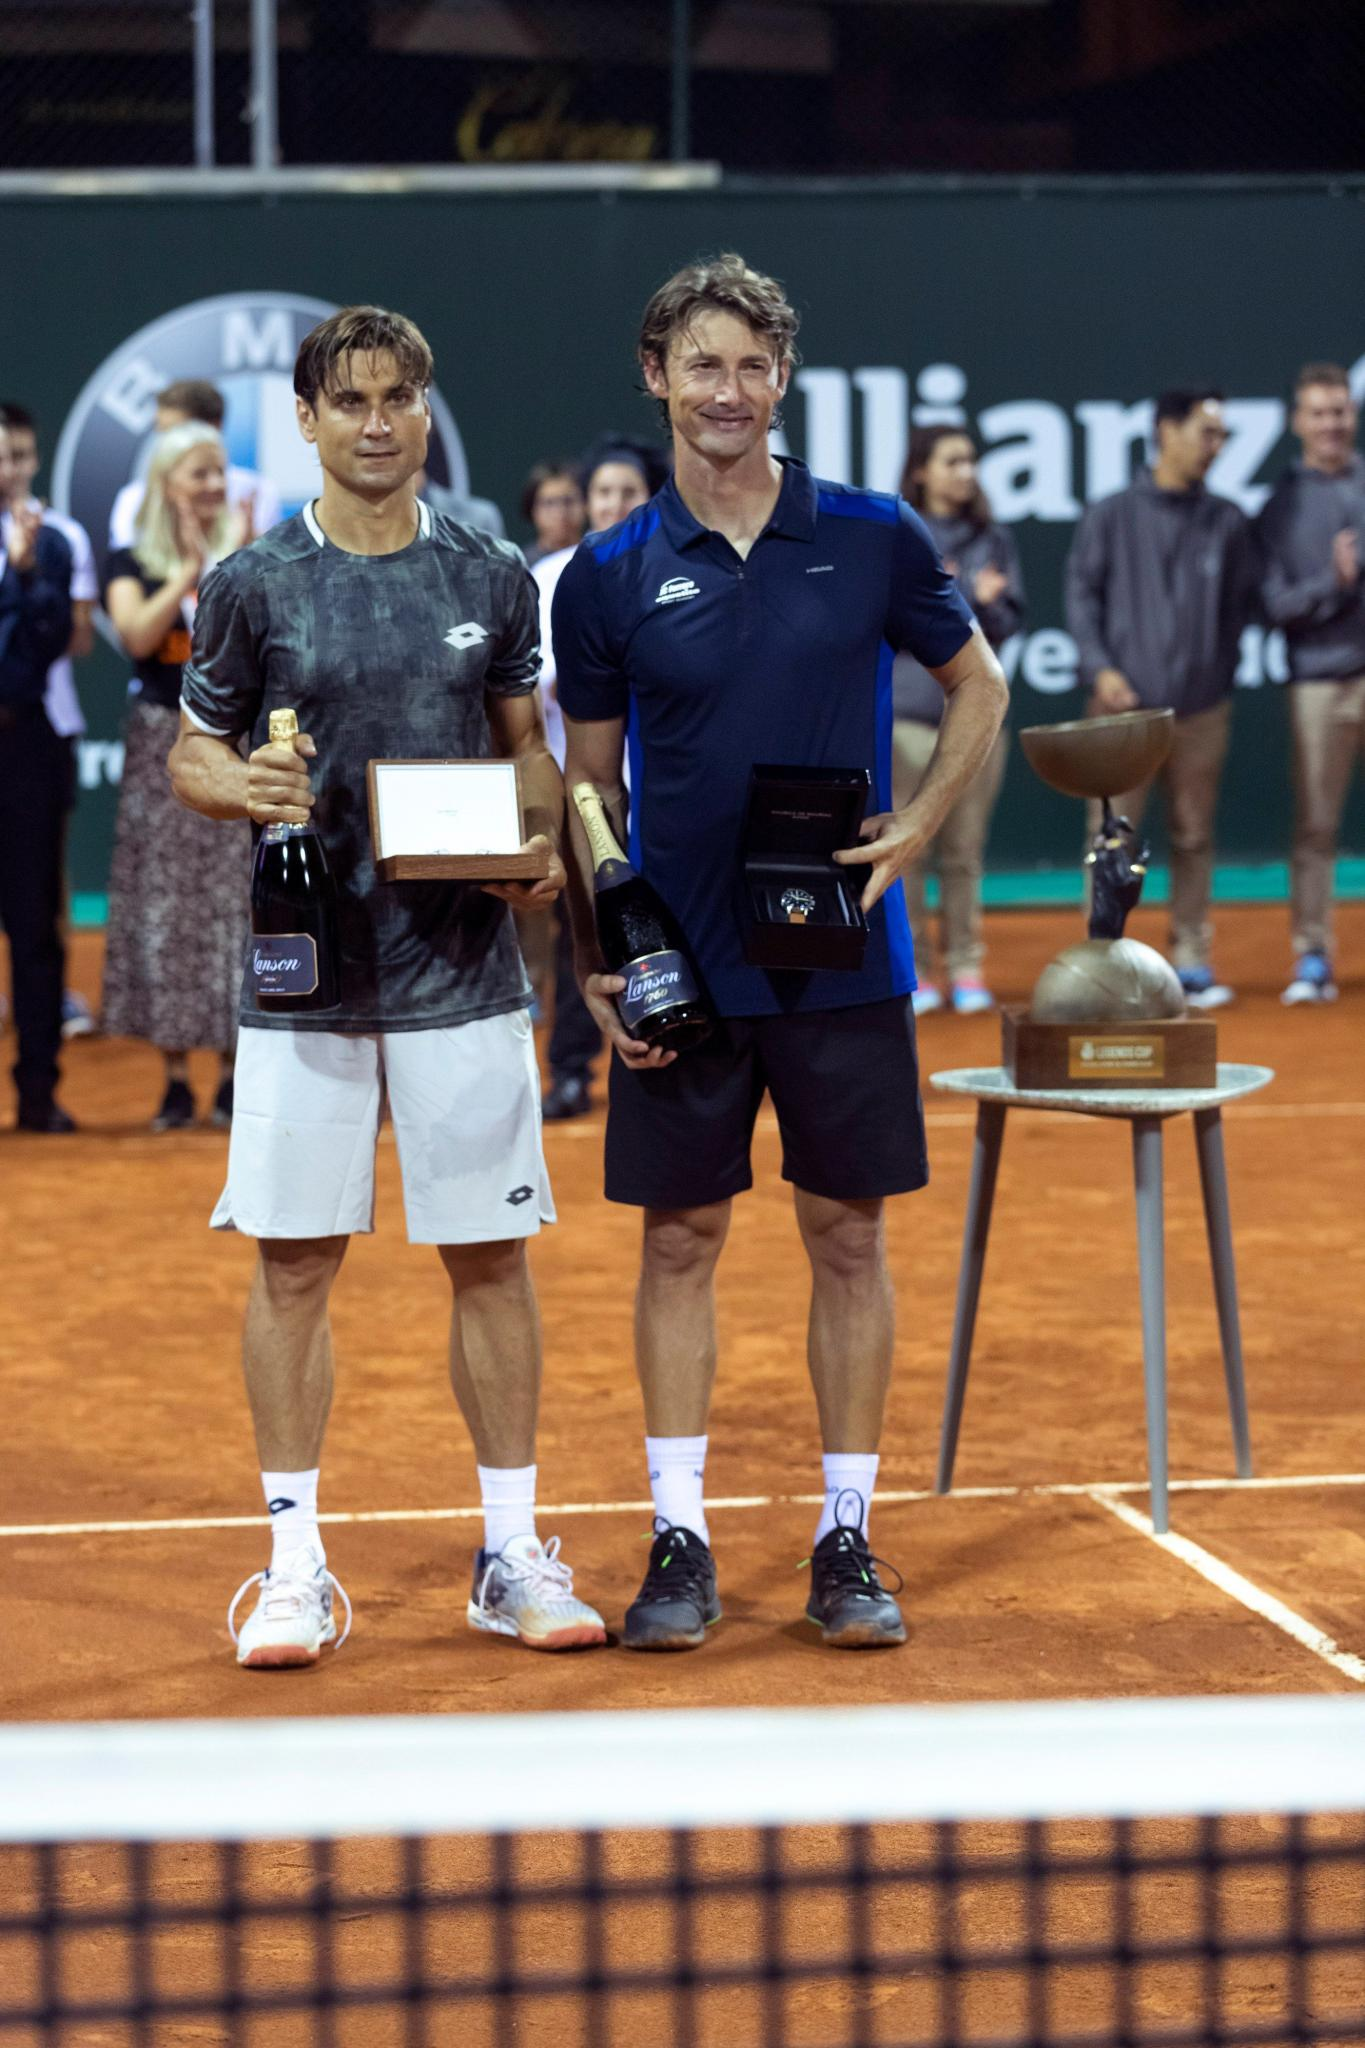 ATP Champions Tour Legends Cup